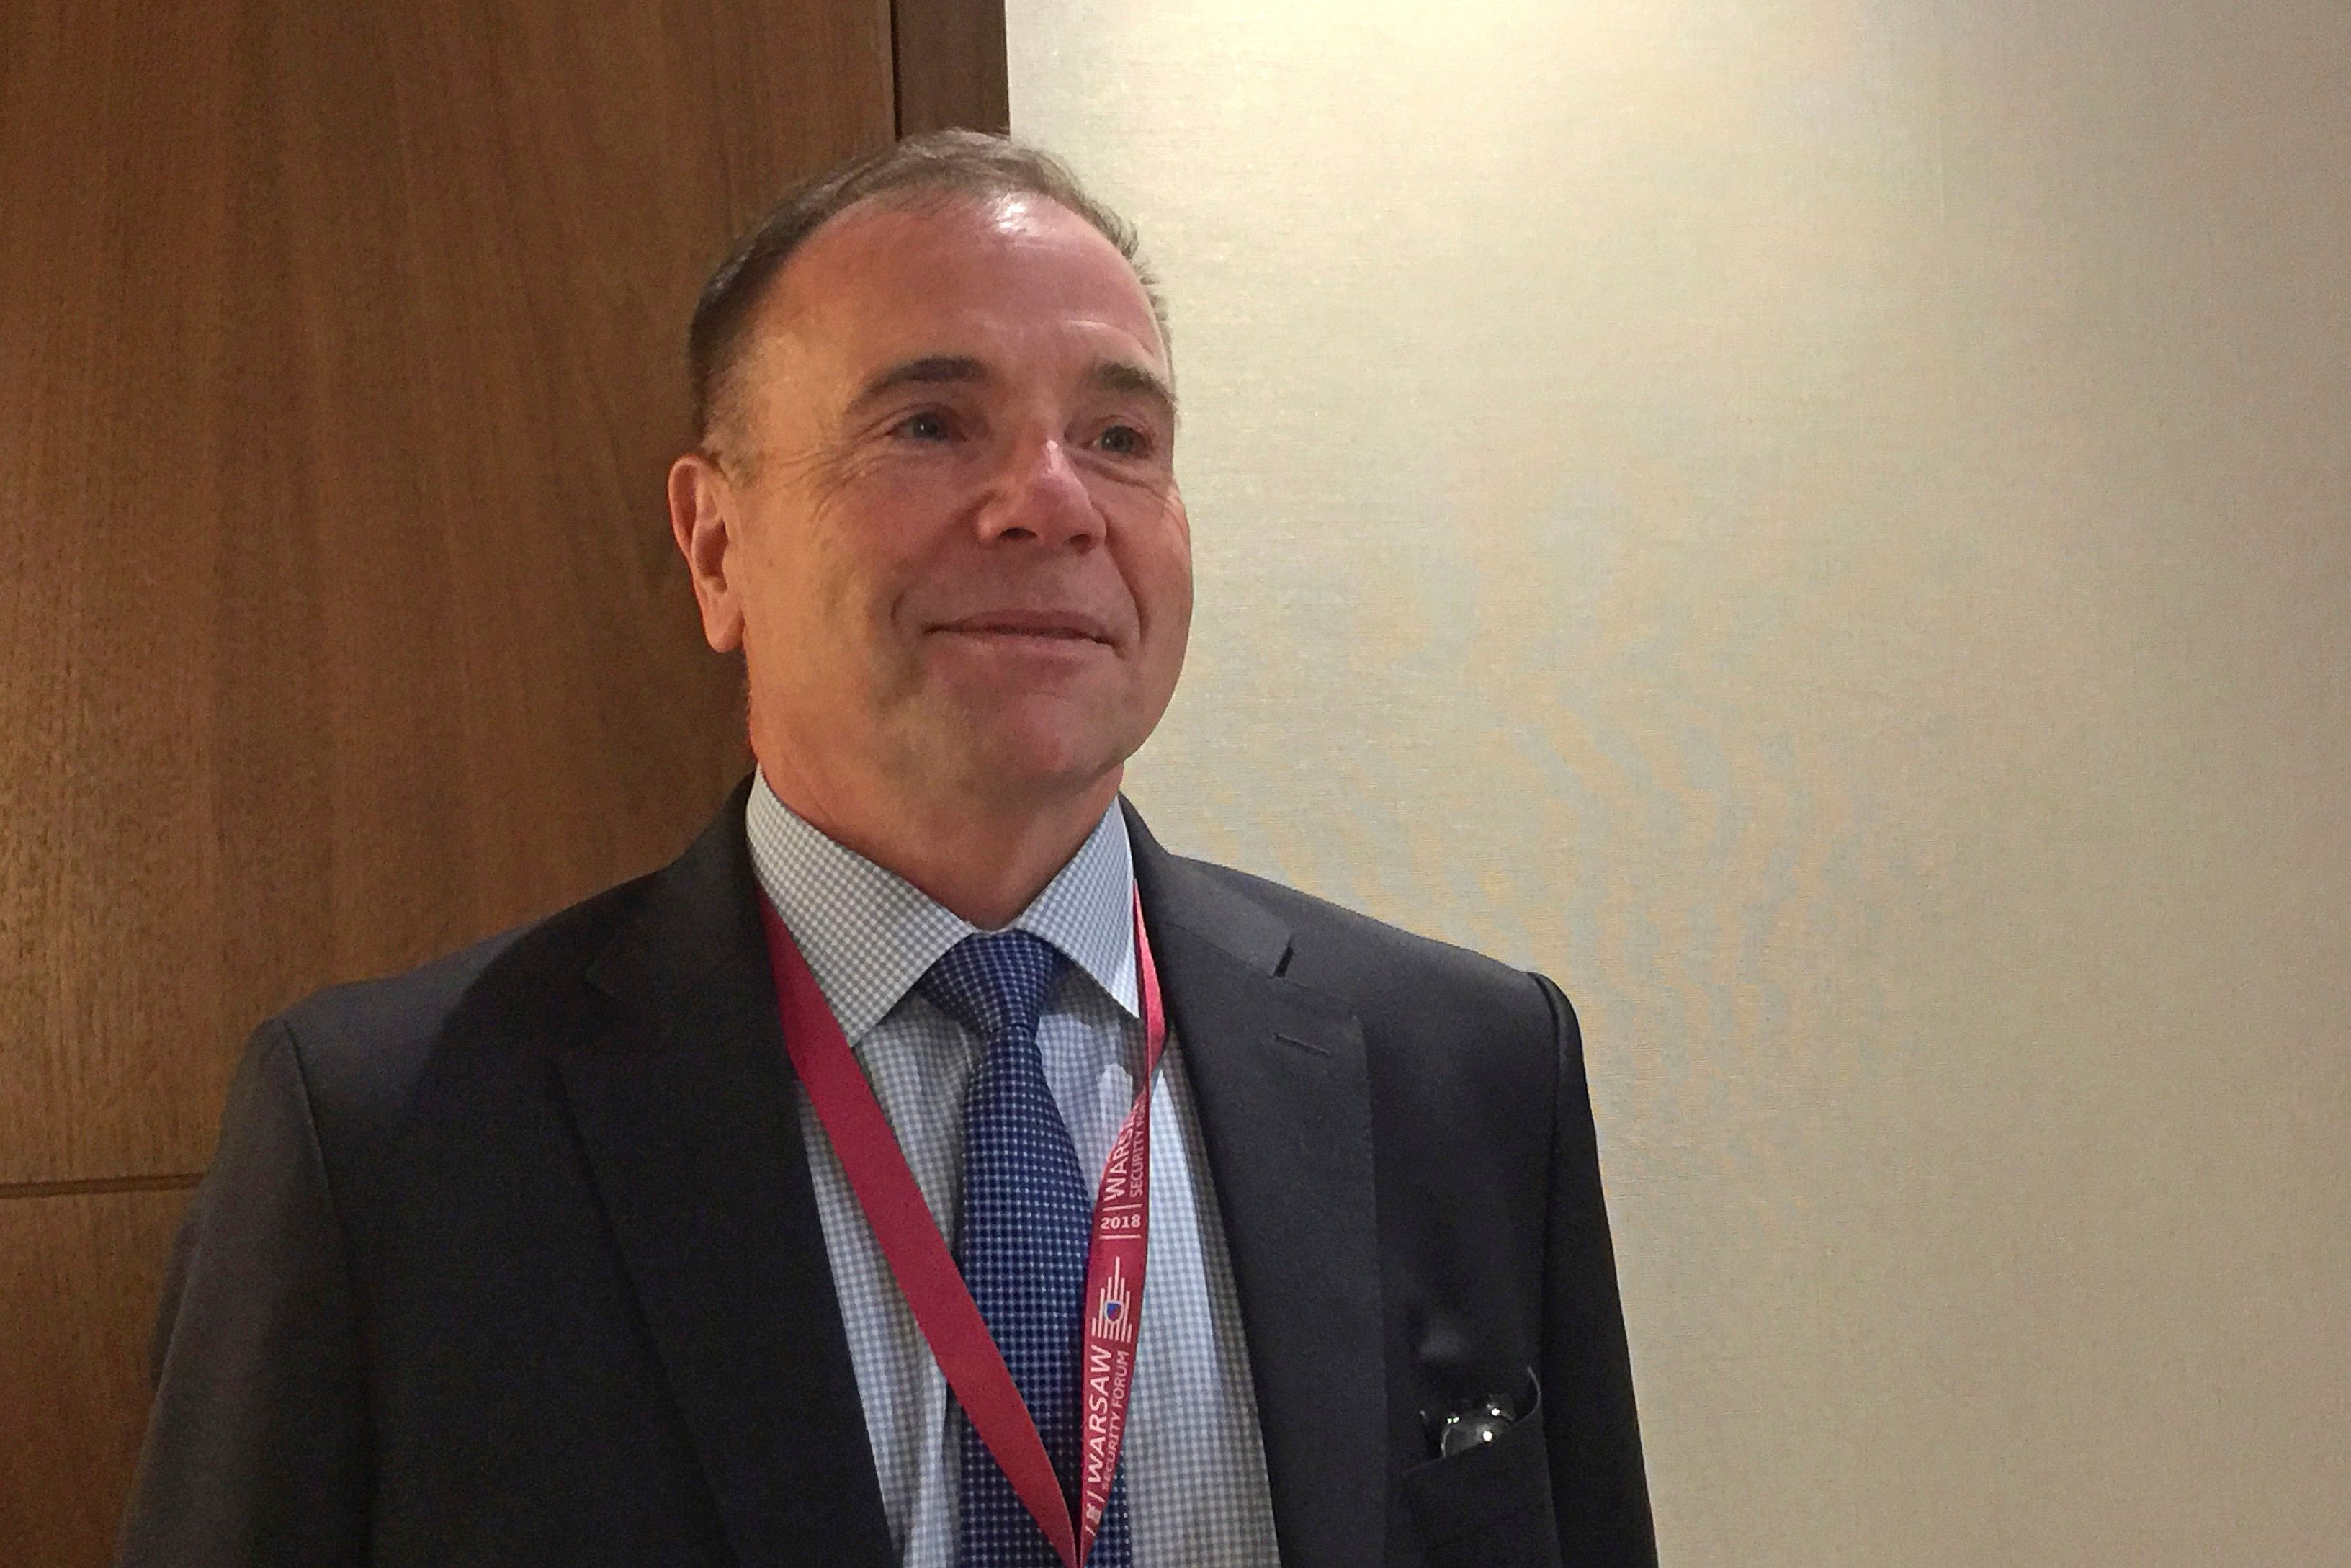 Retired Lt. Gen. Ben Hodges speaks to reporters on the sideline of the Warsaw Security Forum in Warsaw, Poland, Wednesday Oct. 24, 2018.  Hodges, who was U.S. Army commander in Europe from 2014-17, told the forum that it's likely but not inevitable that the United States will be at war with China in 15-years. (AP Photo/Vanessa Gera)